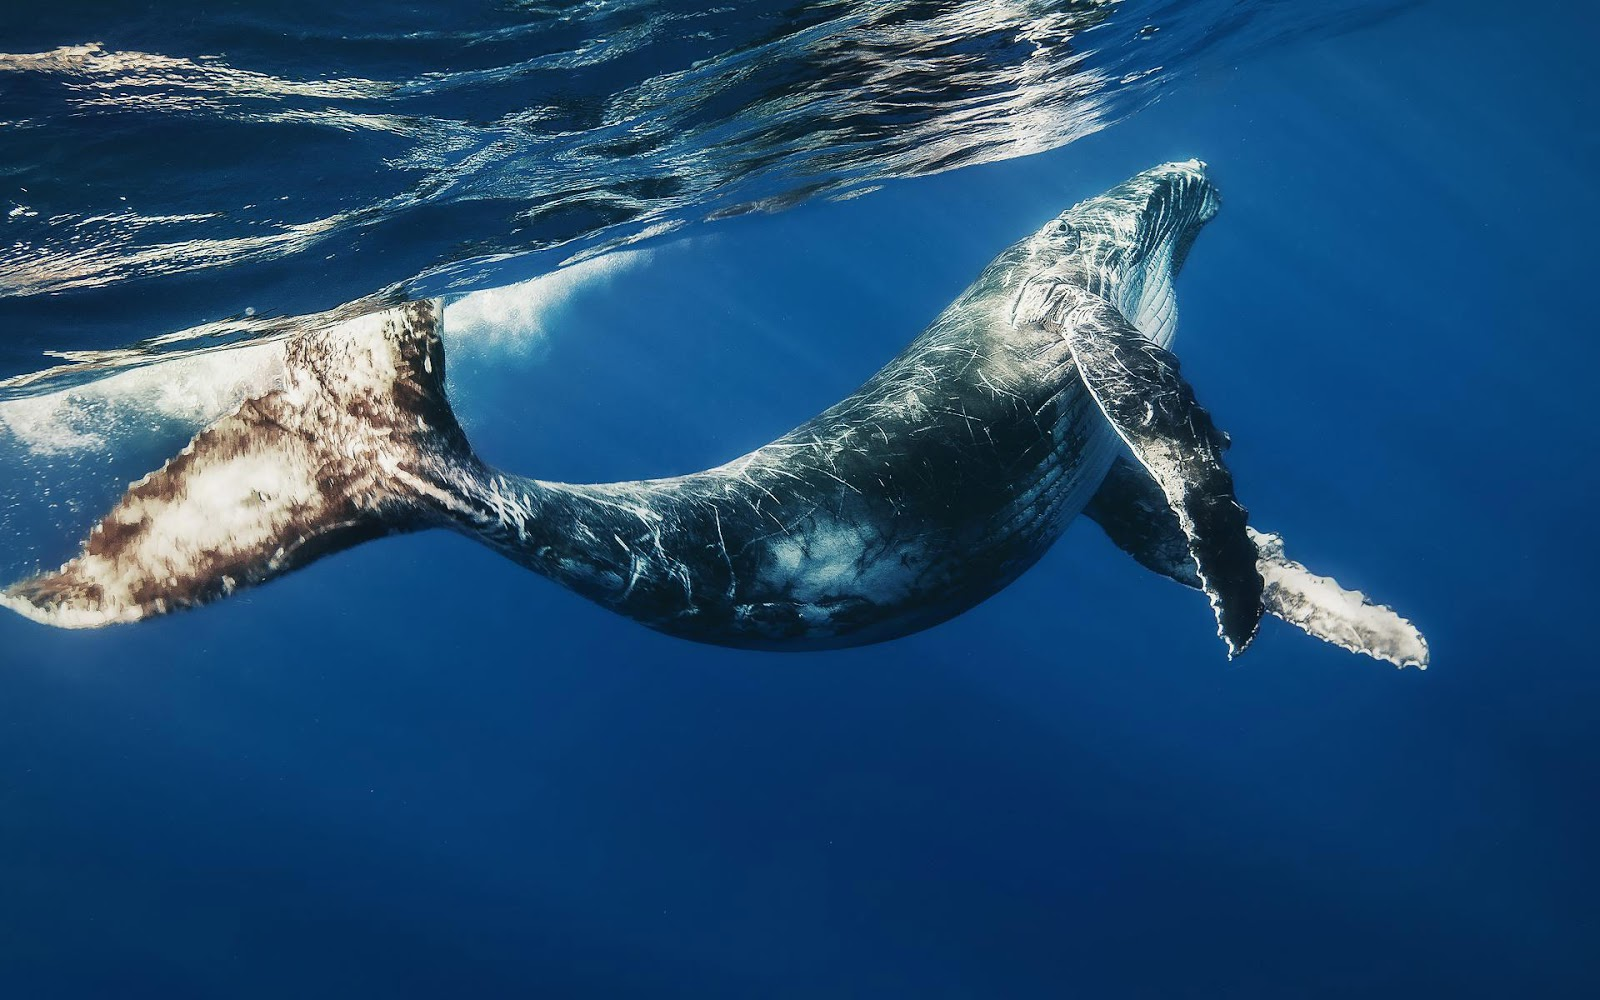 Baby whale wallpaper HD Animals Wallpapers 1600x1000